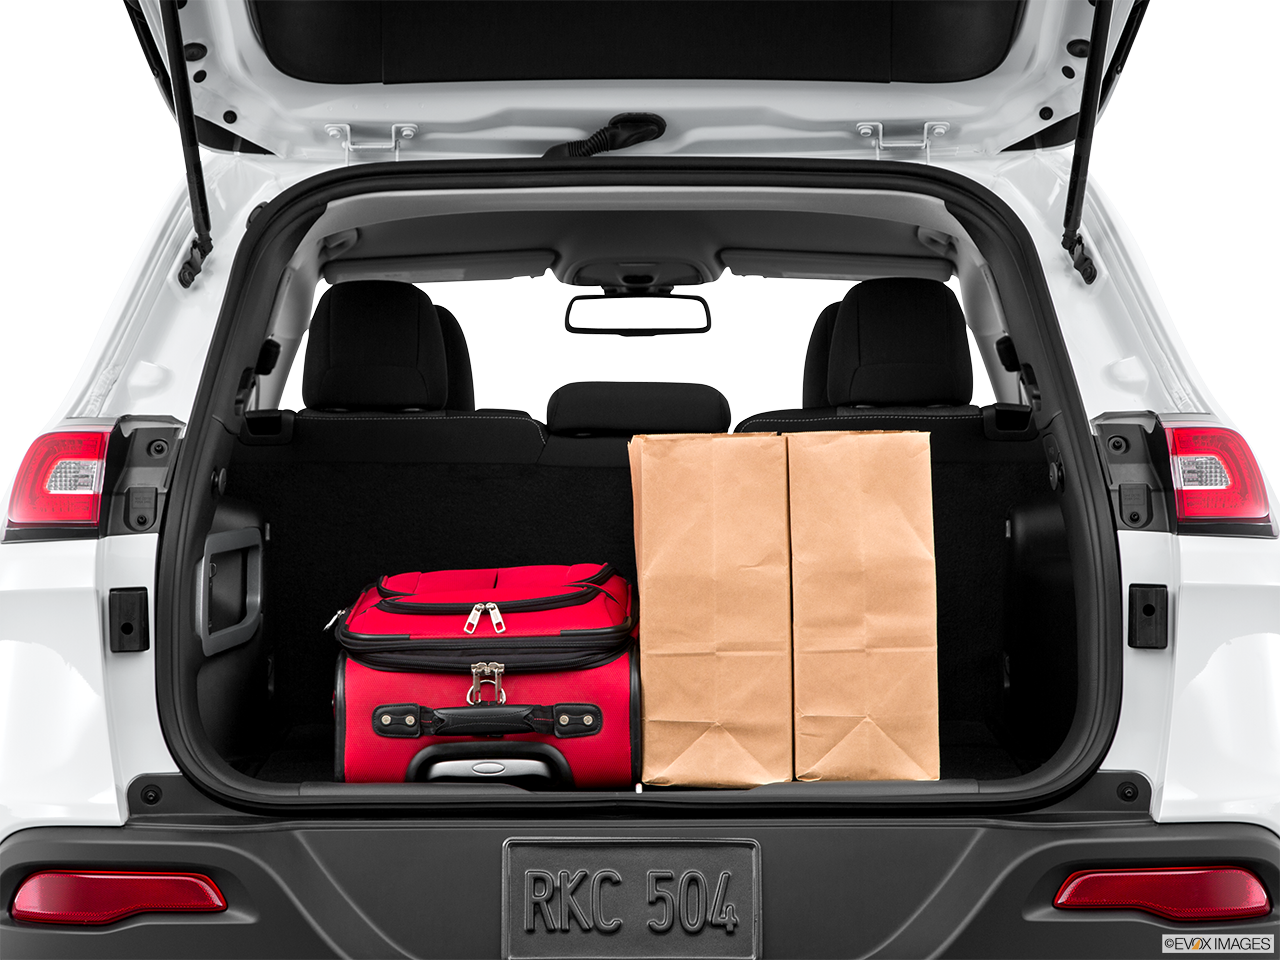 Jeep Cherokee Trunk space